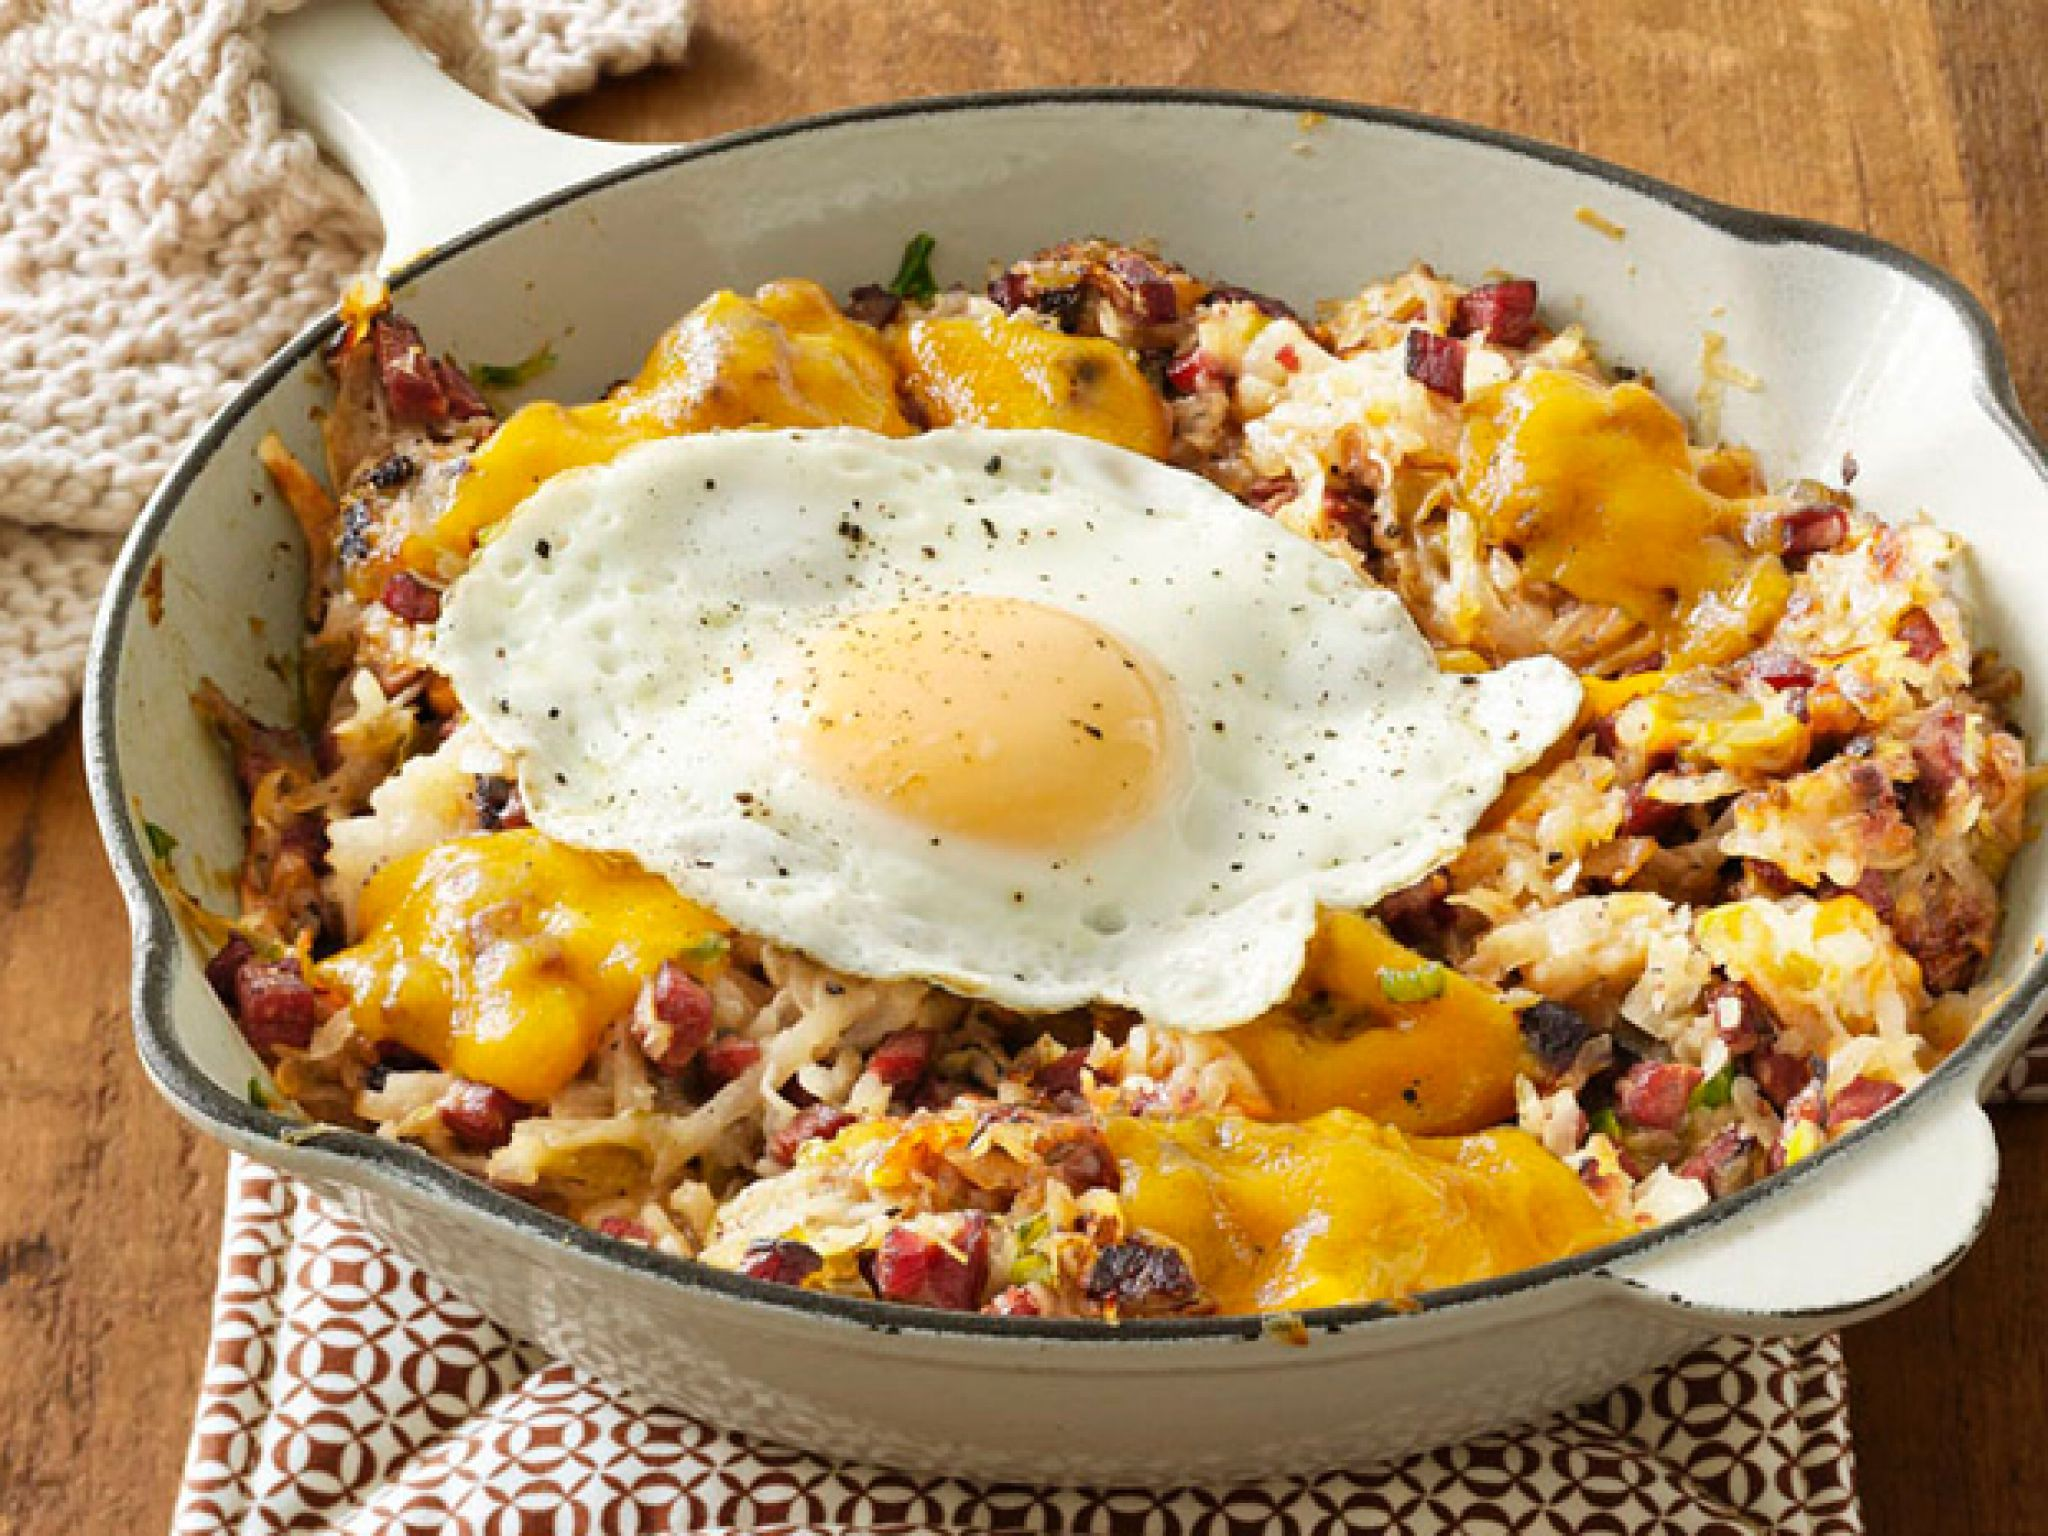 Get this all-star, easy-to-follow Corned Beef Hash recipe from Food Network Magazine